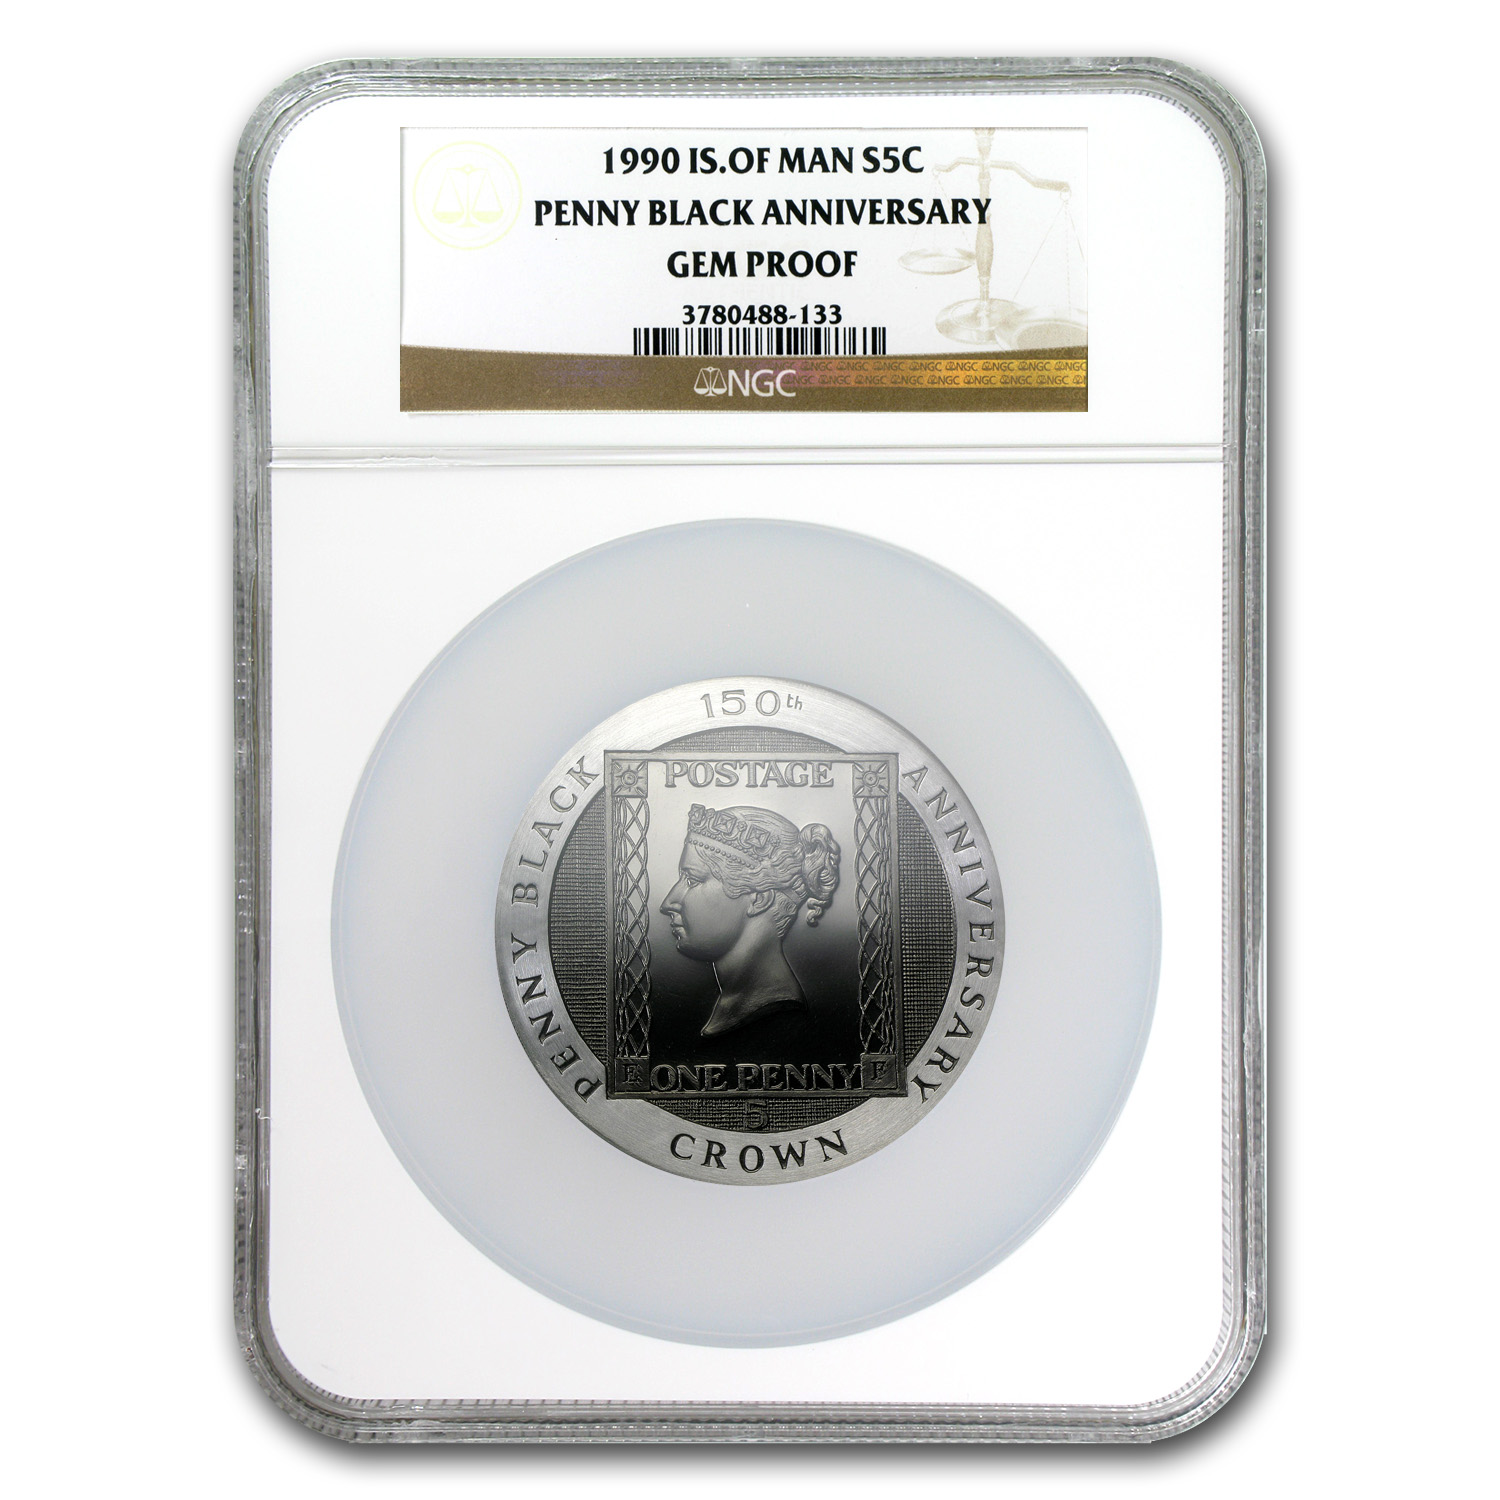 1990 Isle of Man Silver 5 Crown Penny Black Gem Proof NGC